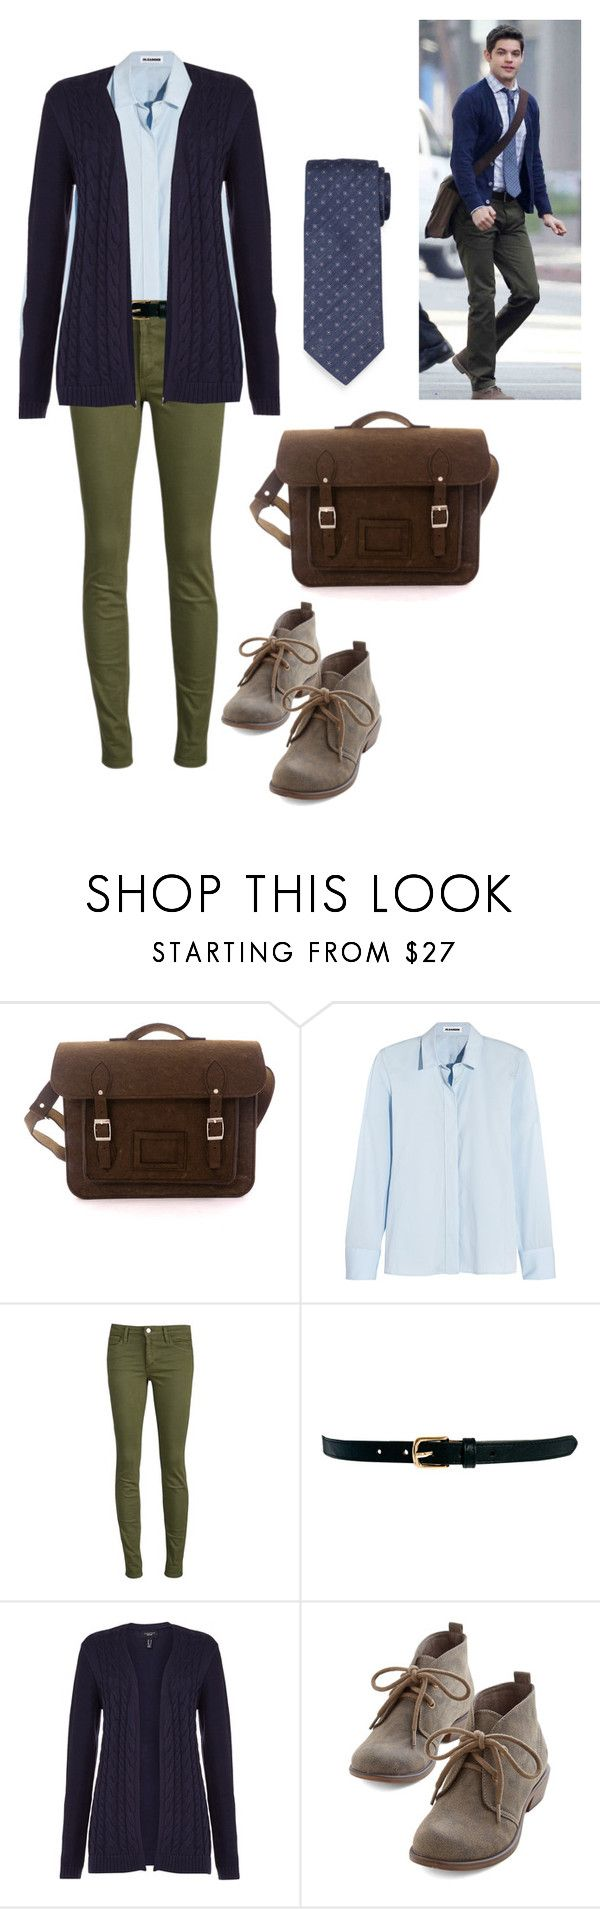 Winn- Supergirl by rebellious-ingenue on Polyvore featuring Lands' End, Jil Sander, Joe's Jeans, Warehouse and Brioni